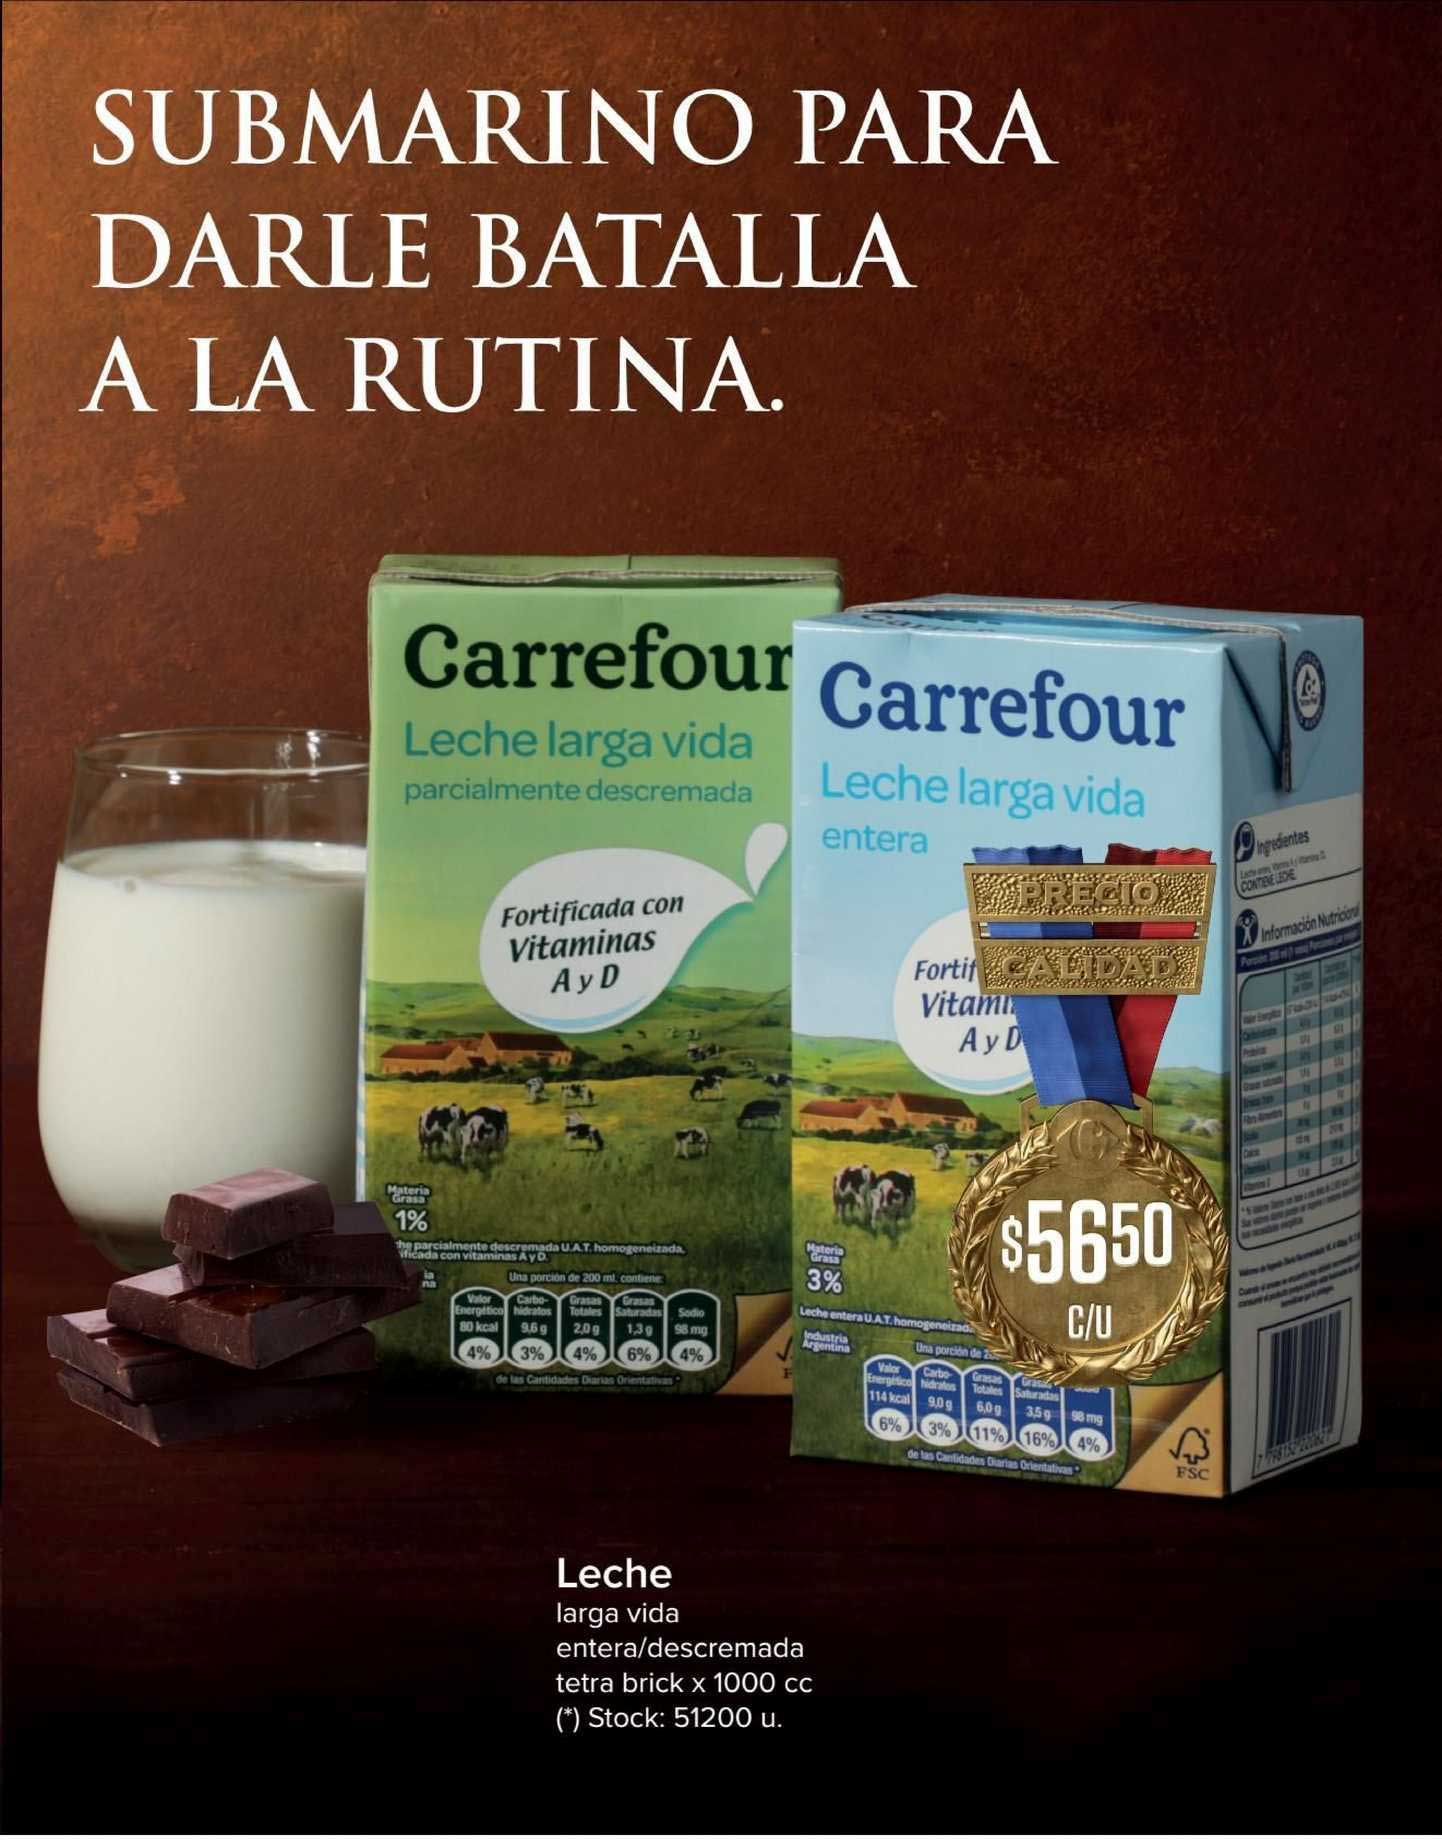 Carrefour Express Leche Larga Vida Entera-descremada Tetra Brick